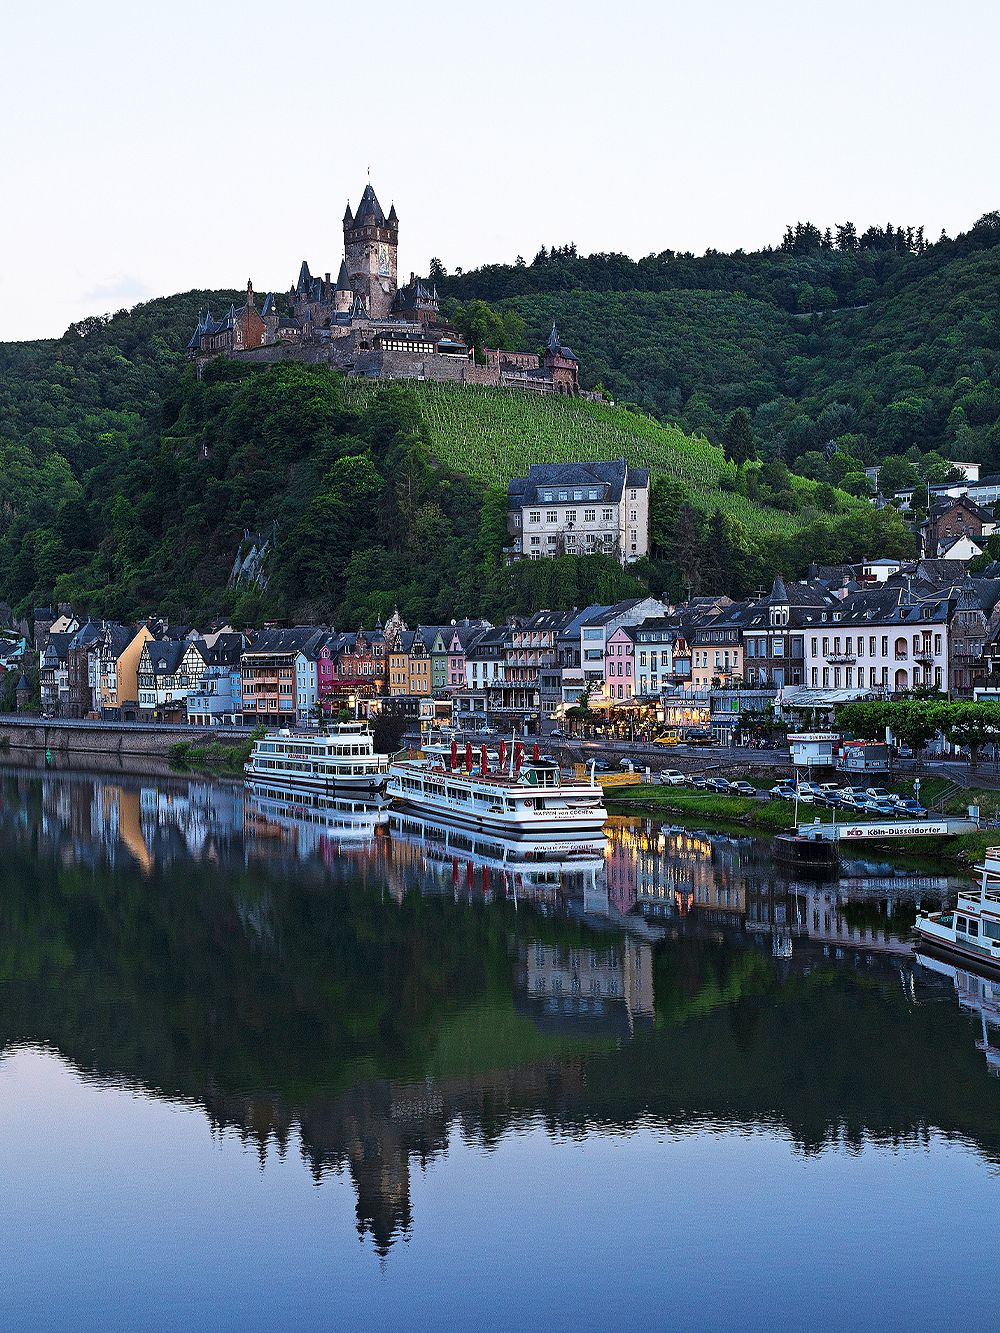 Biking trips in spectacular places: The Mosel river, Germany